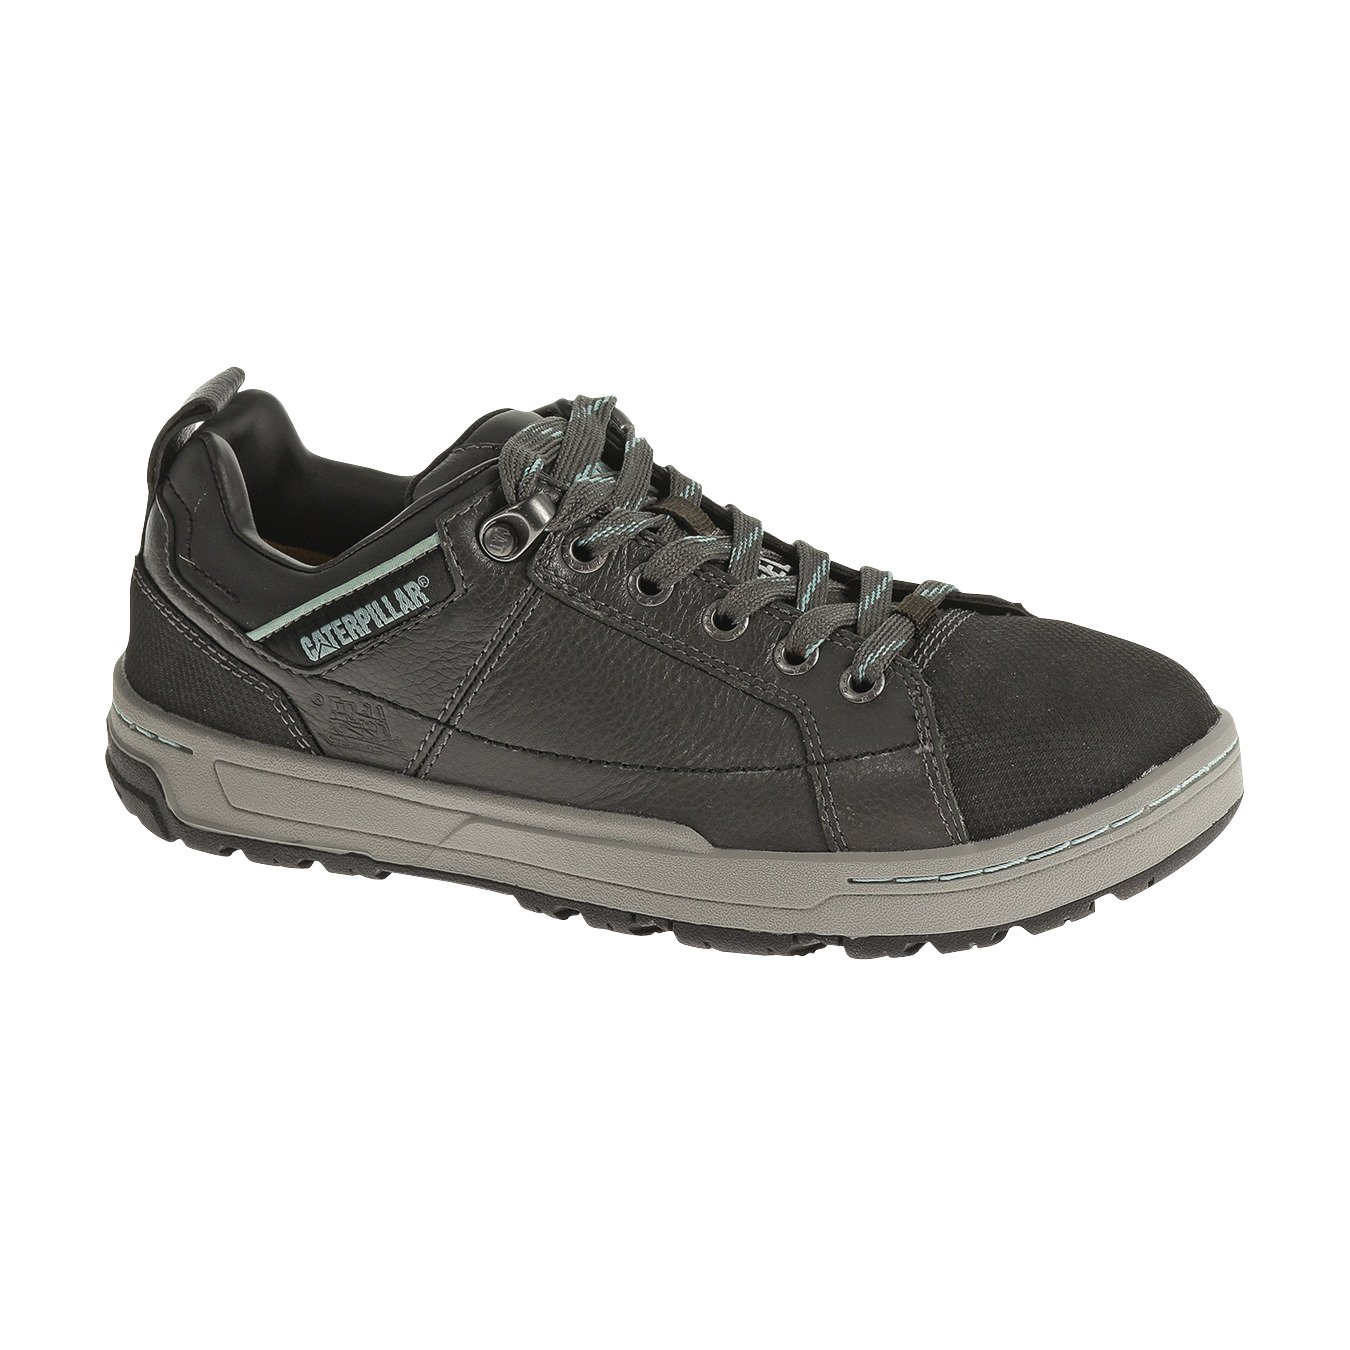 Display product reviews for Cat Footwear Women s Brode Steel-Toe Work Shoes 4098dd3aa16